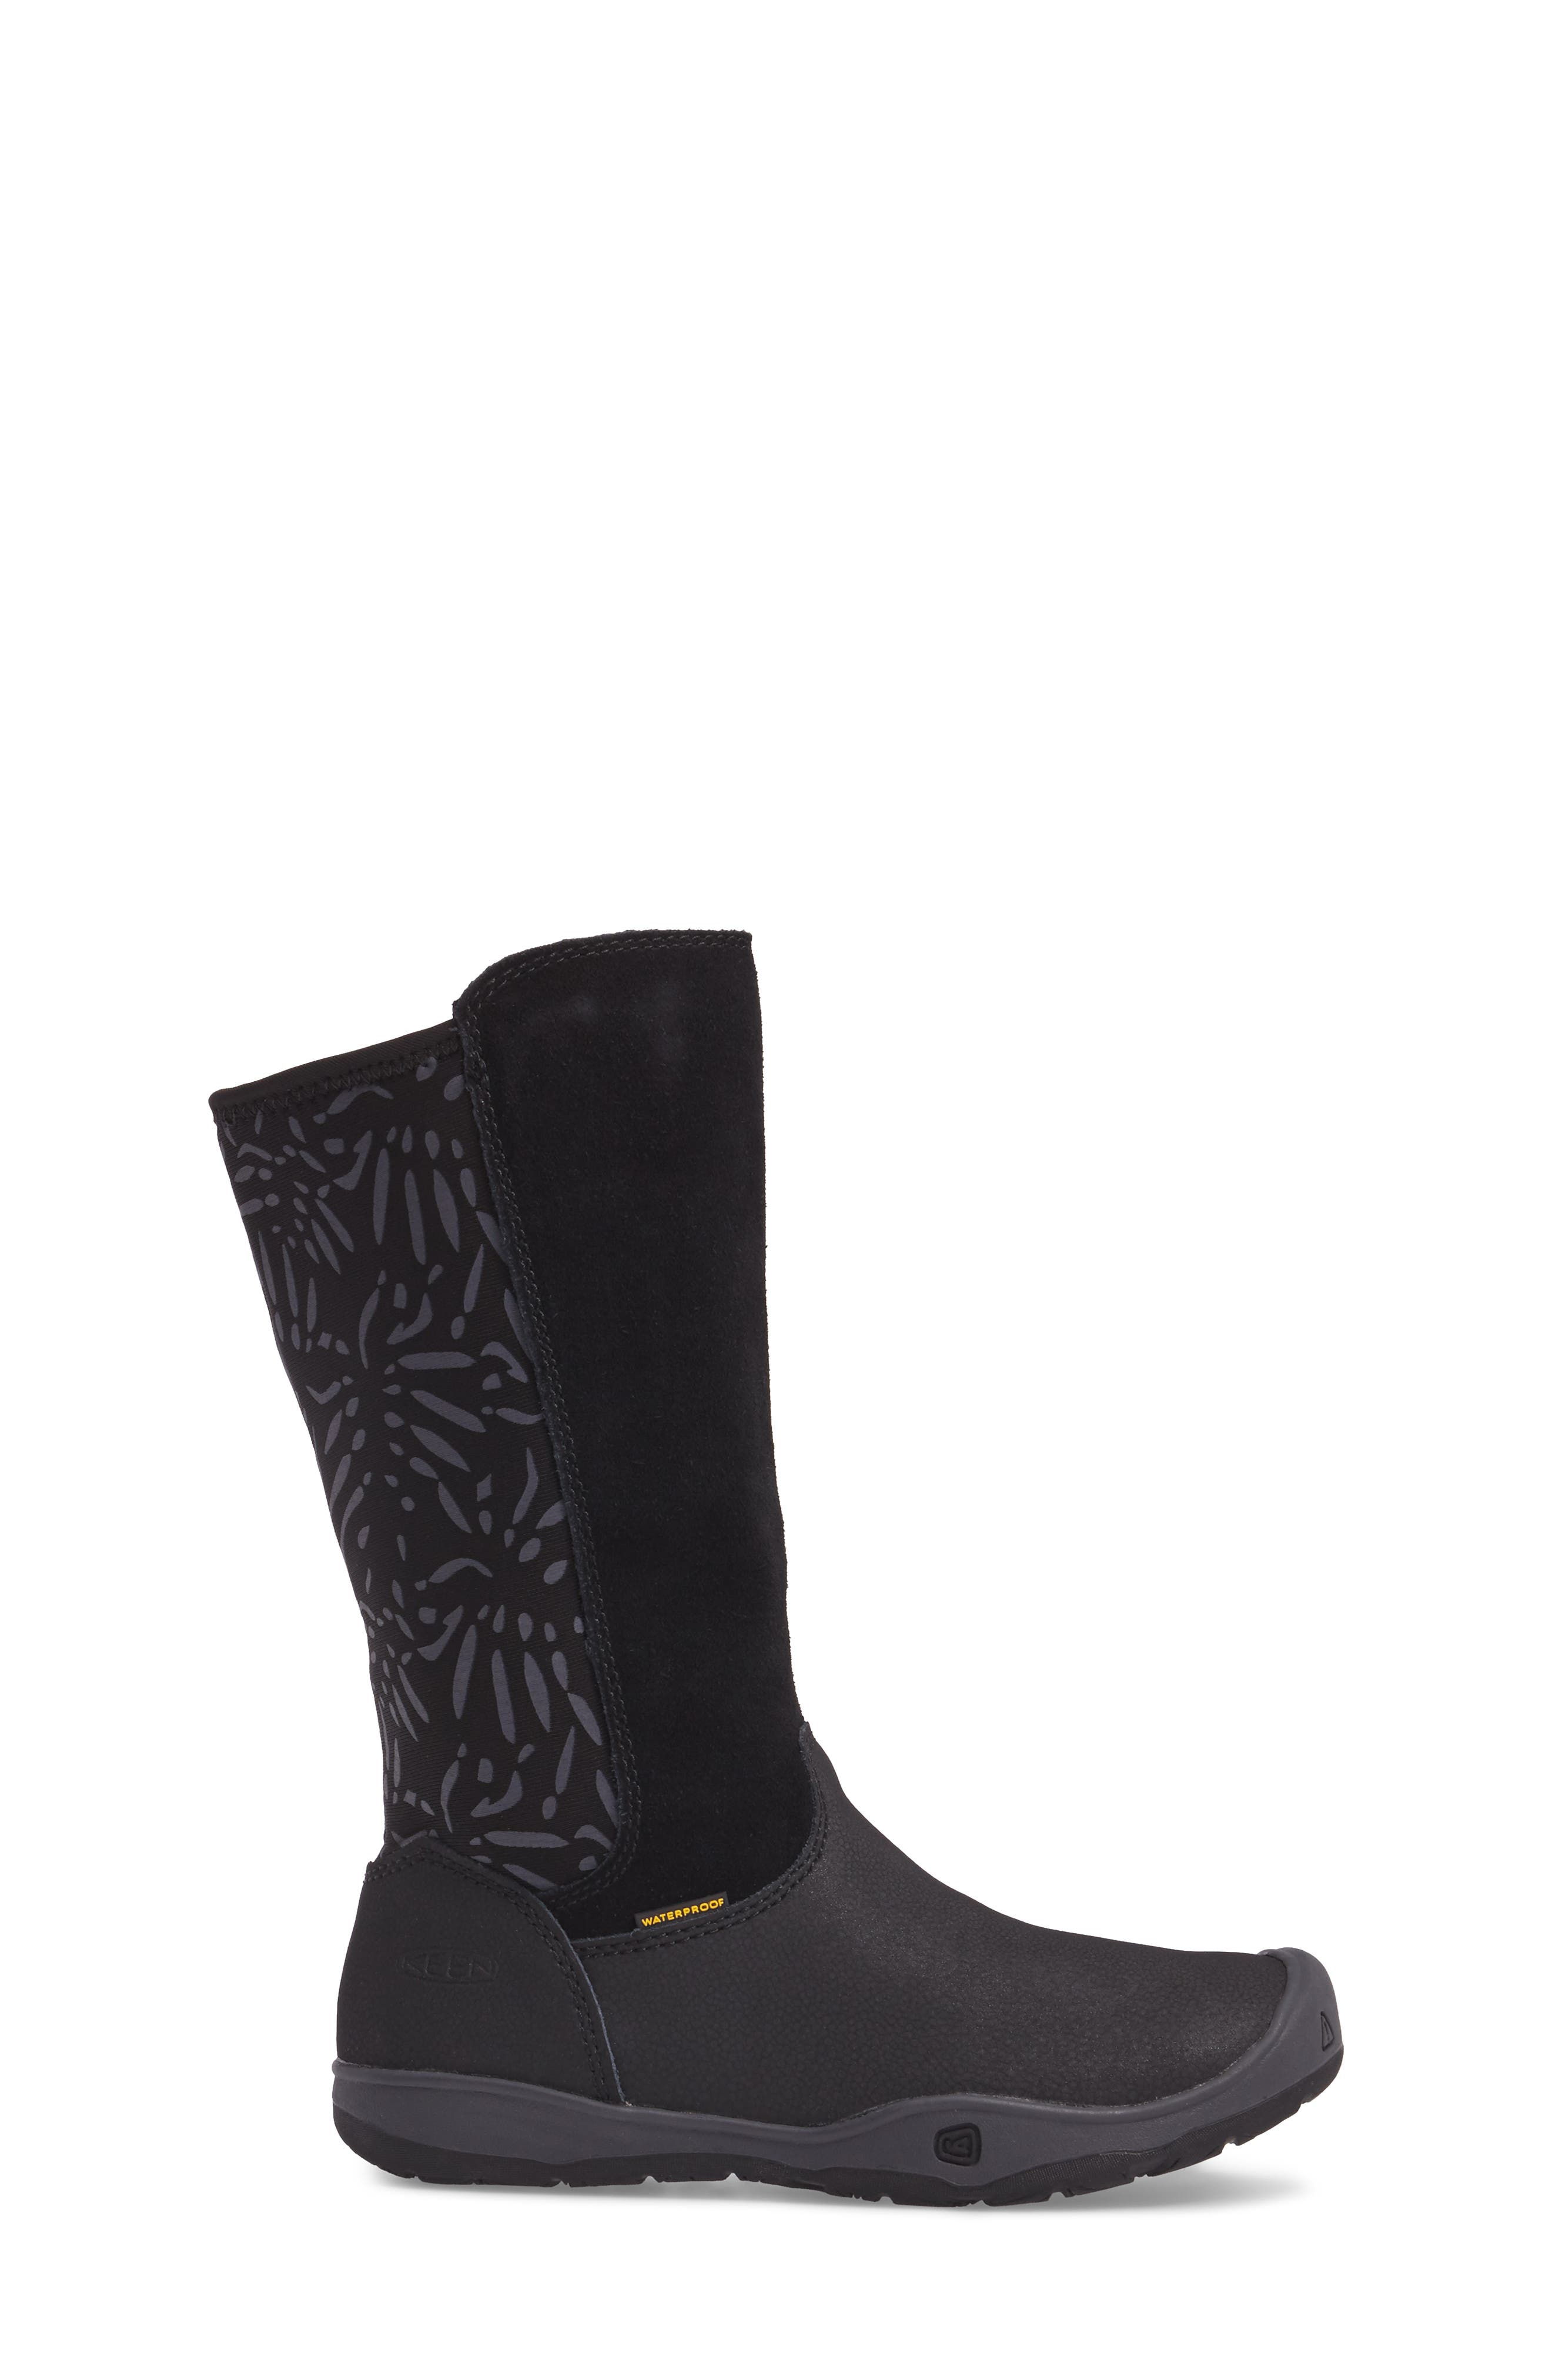 Moxie Tall Waterproof Boot,                             Alternate thumbnail 3, color,                             Black/ Magnet